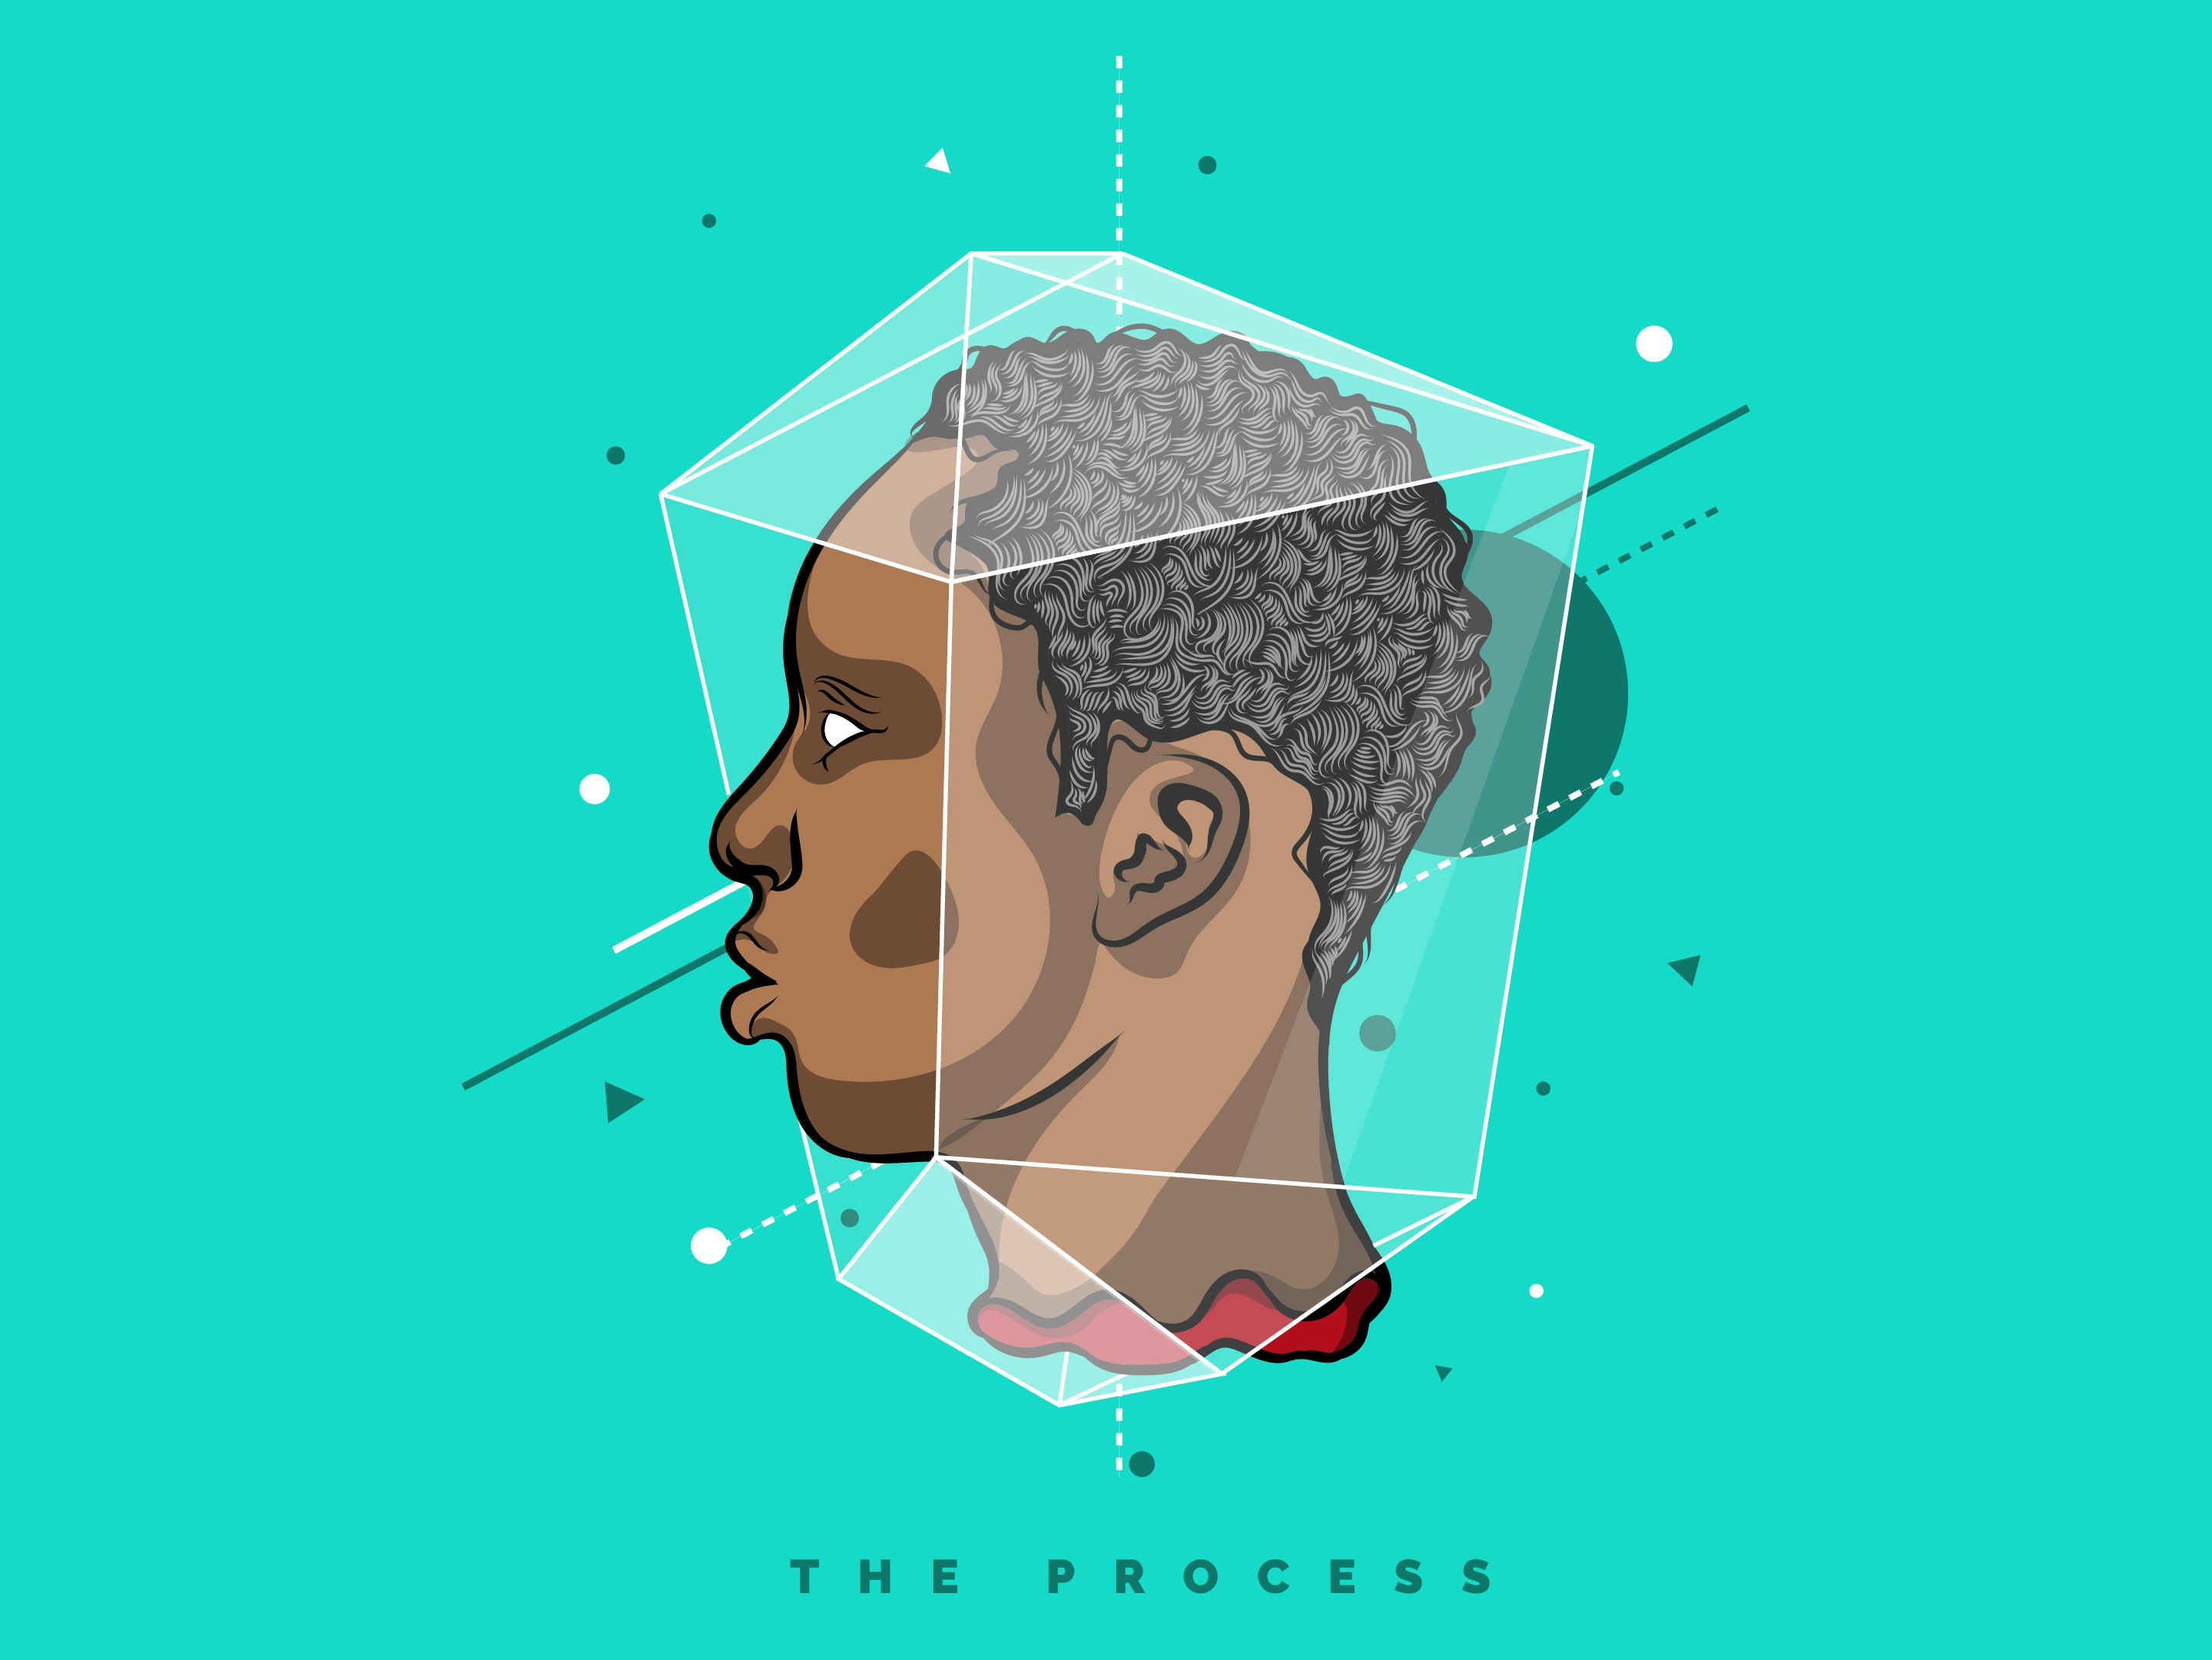 The process dribbble